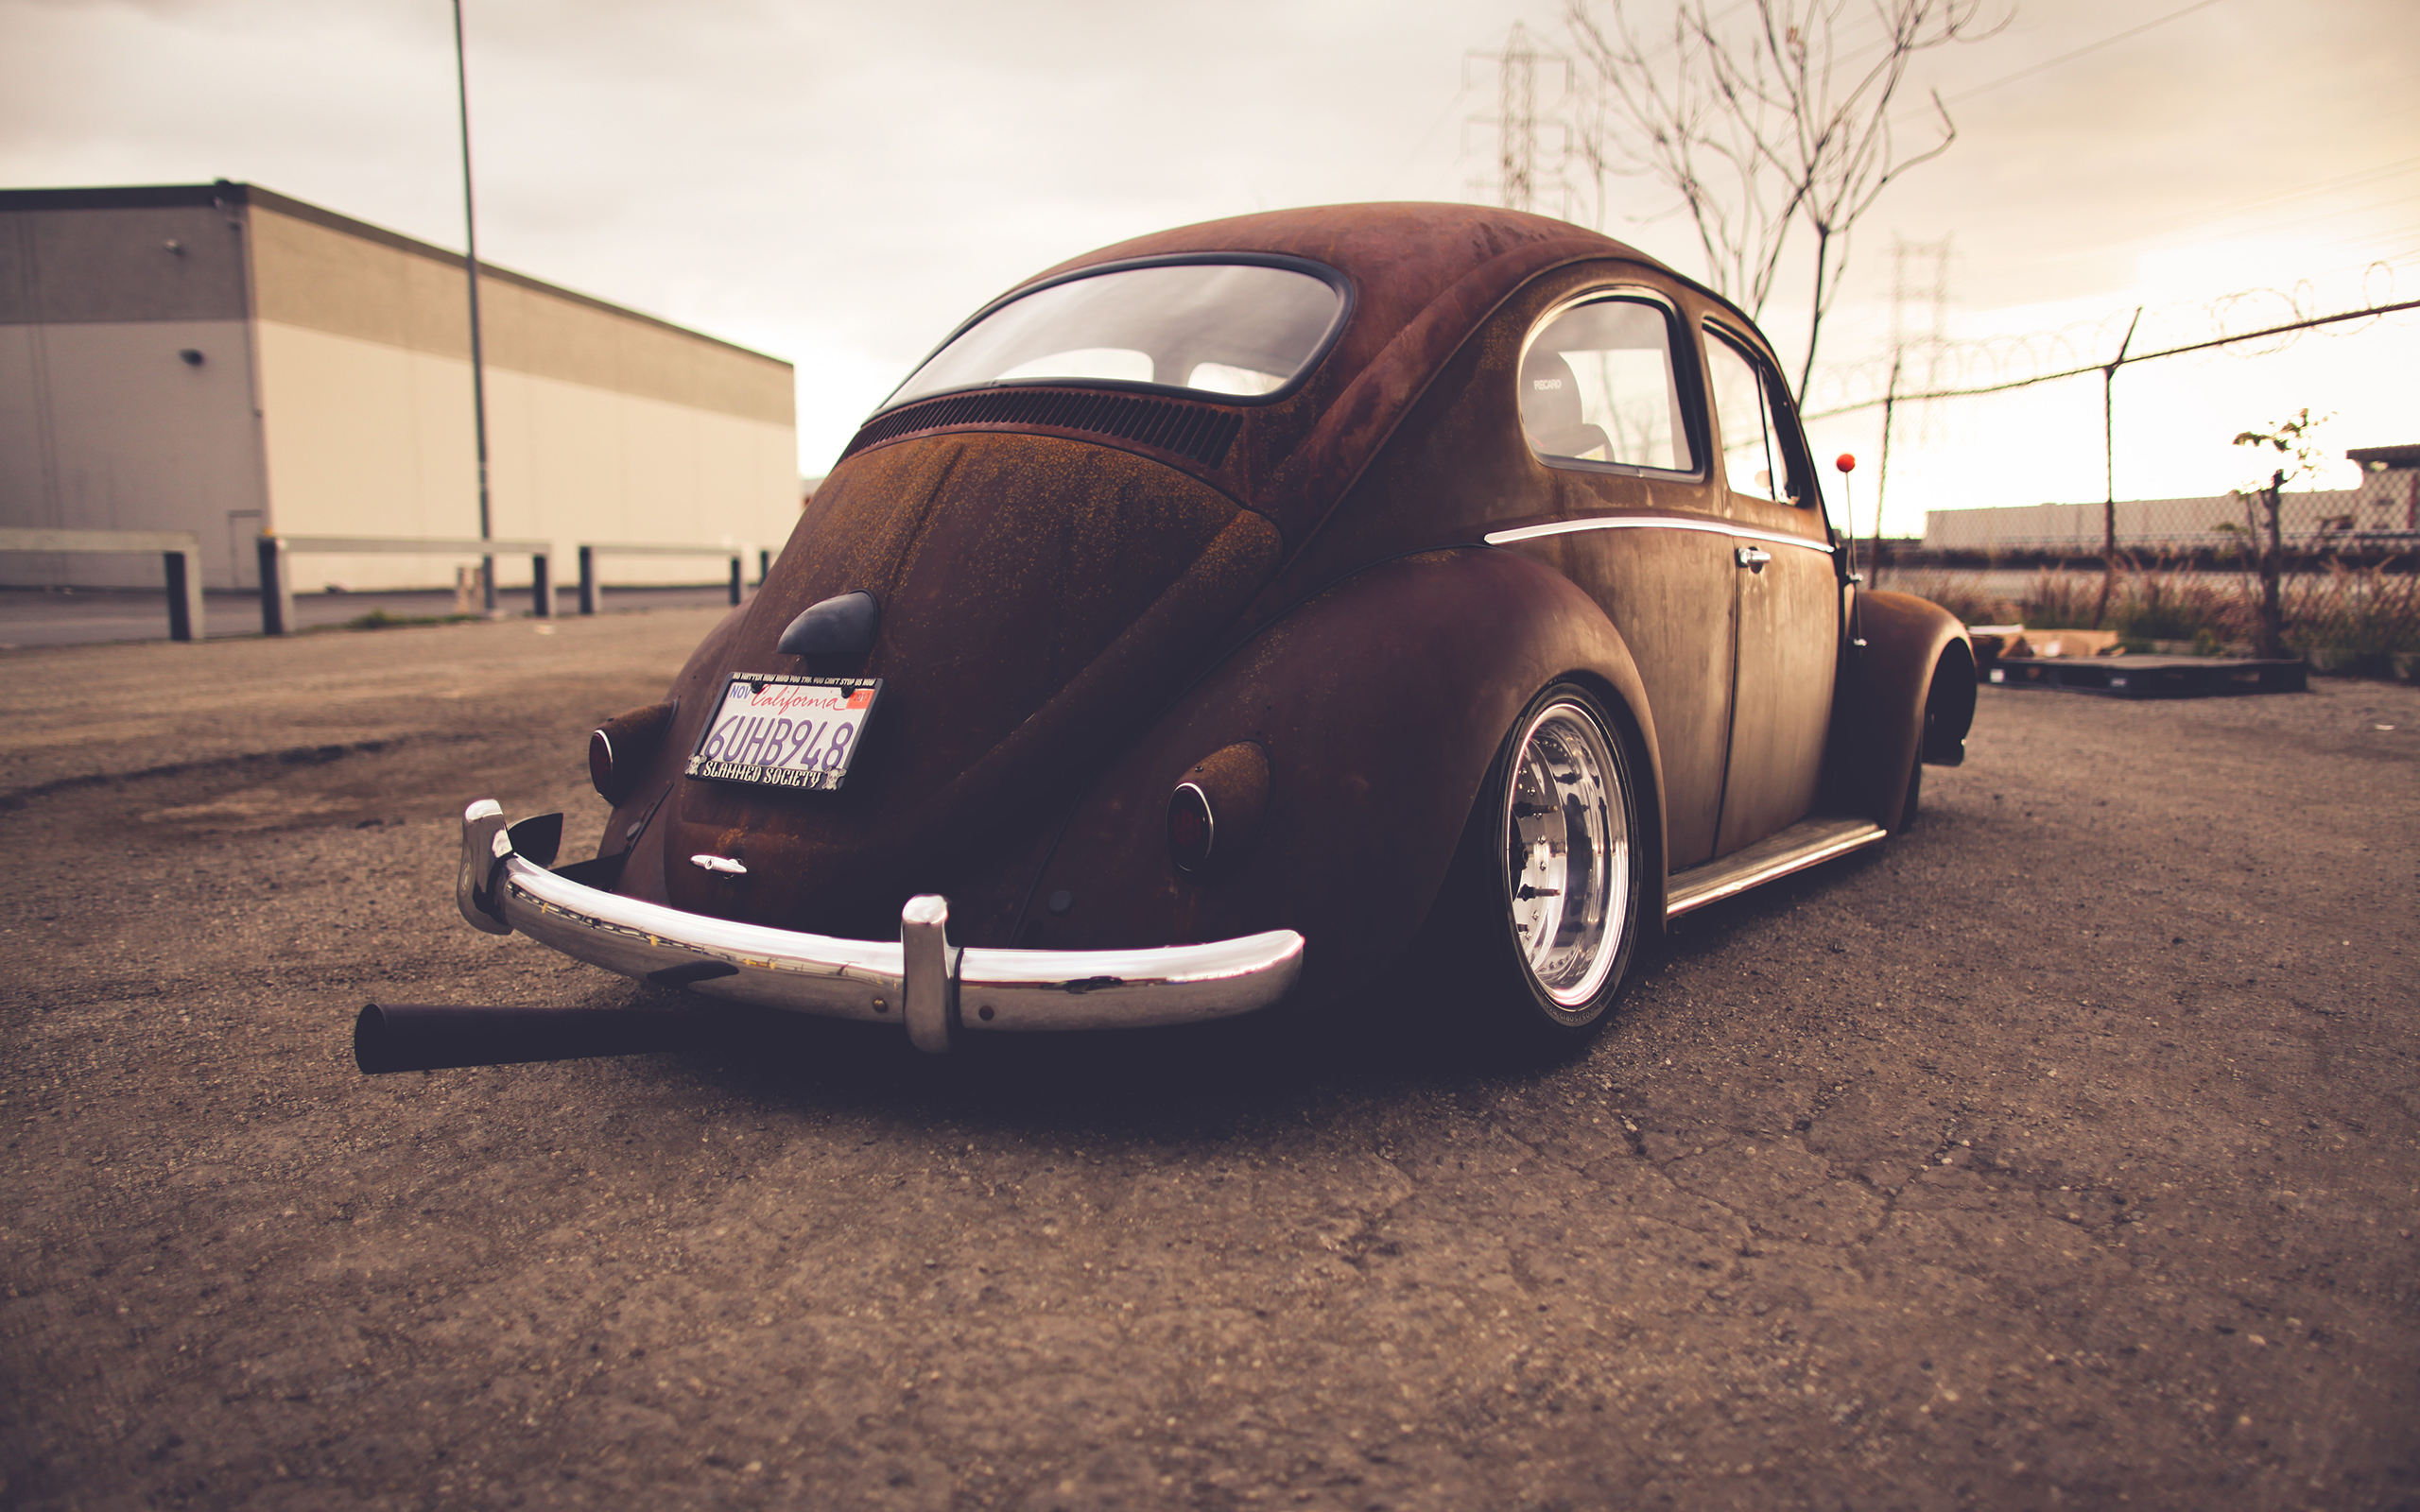 Best Wallpaper Gallery With Pc Wallpaper Volkswagen: Classic Beetle Wallpaper